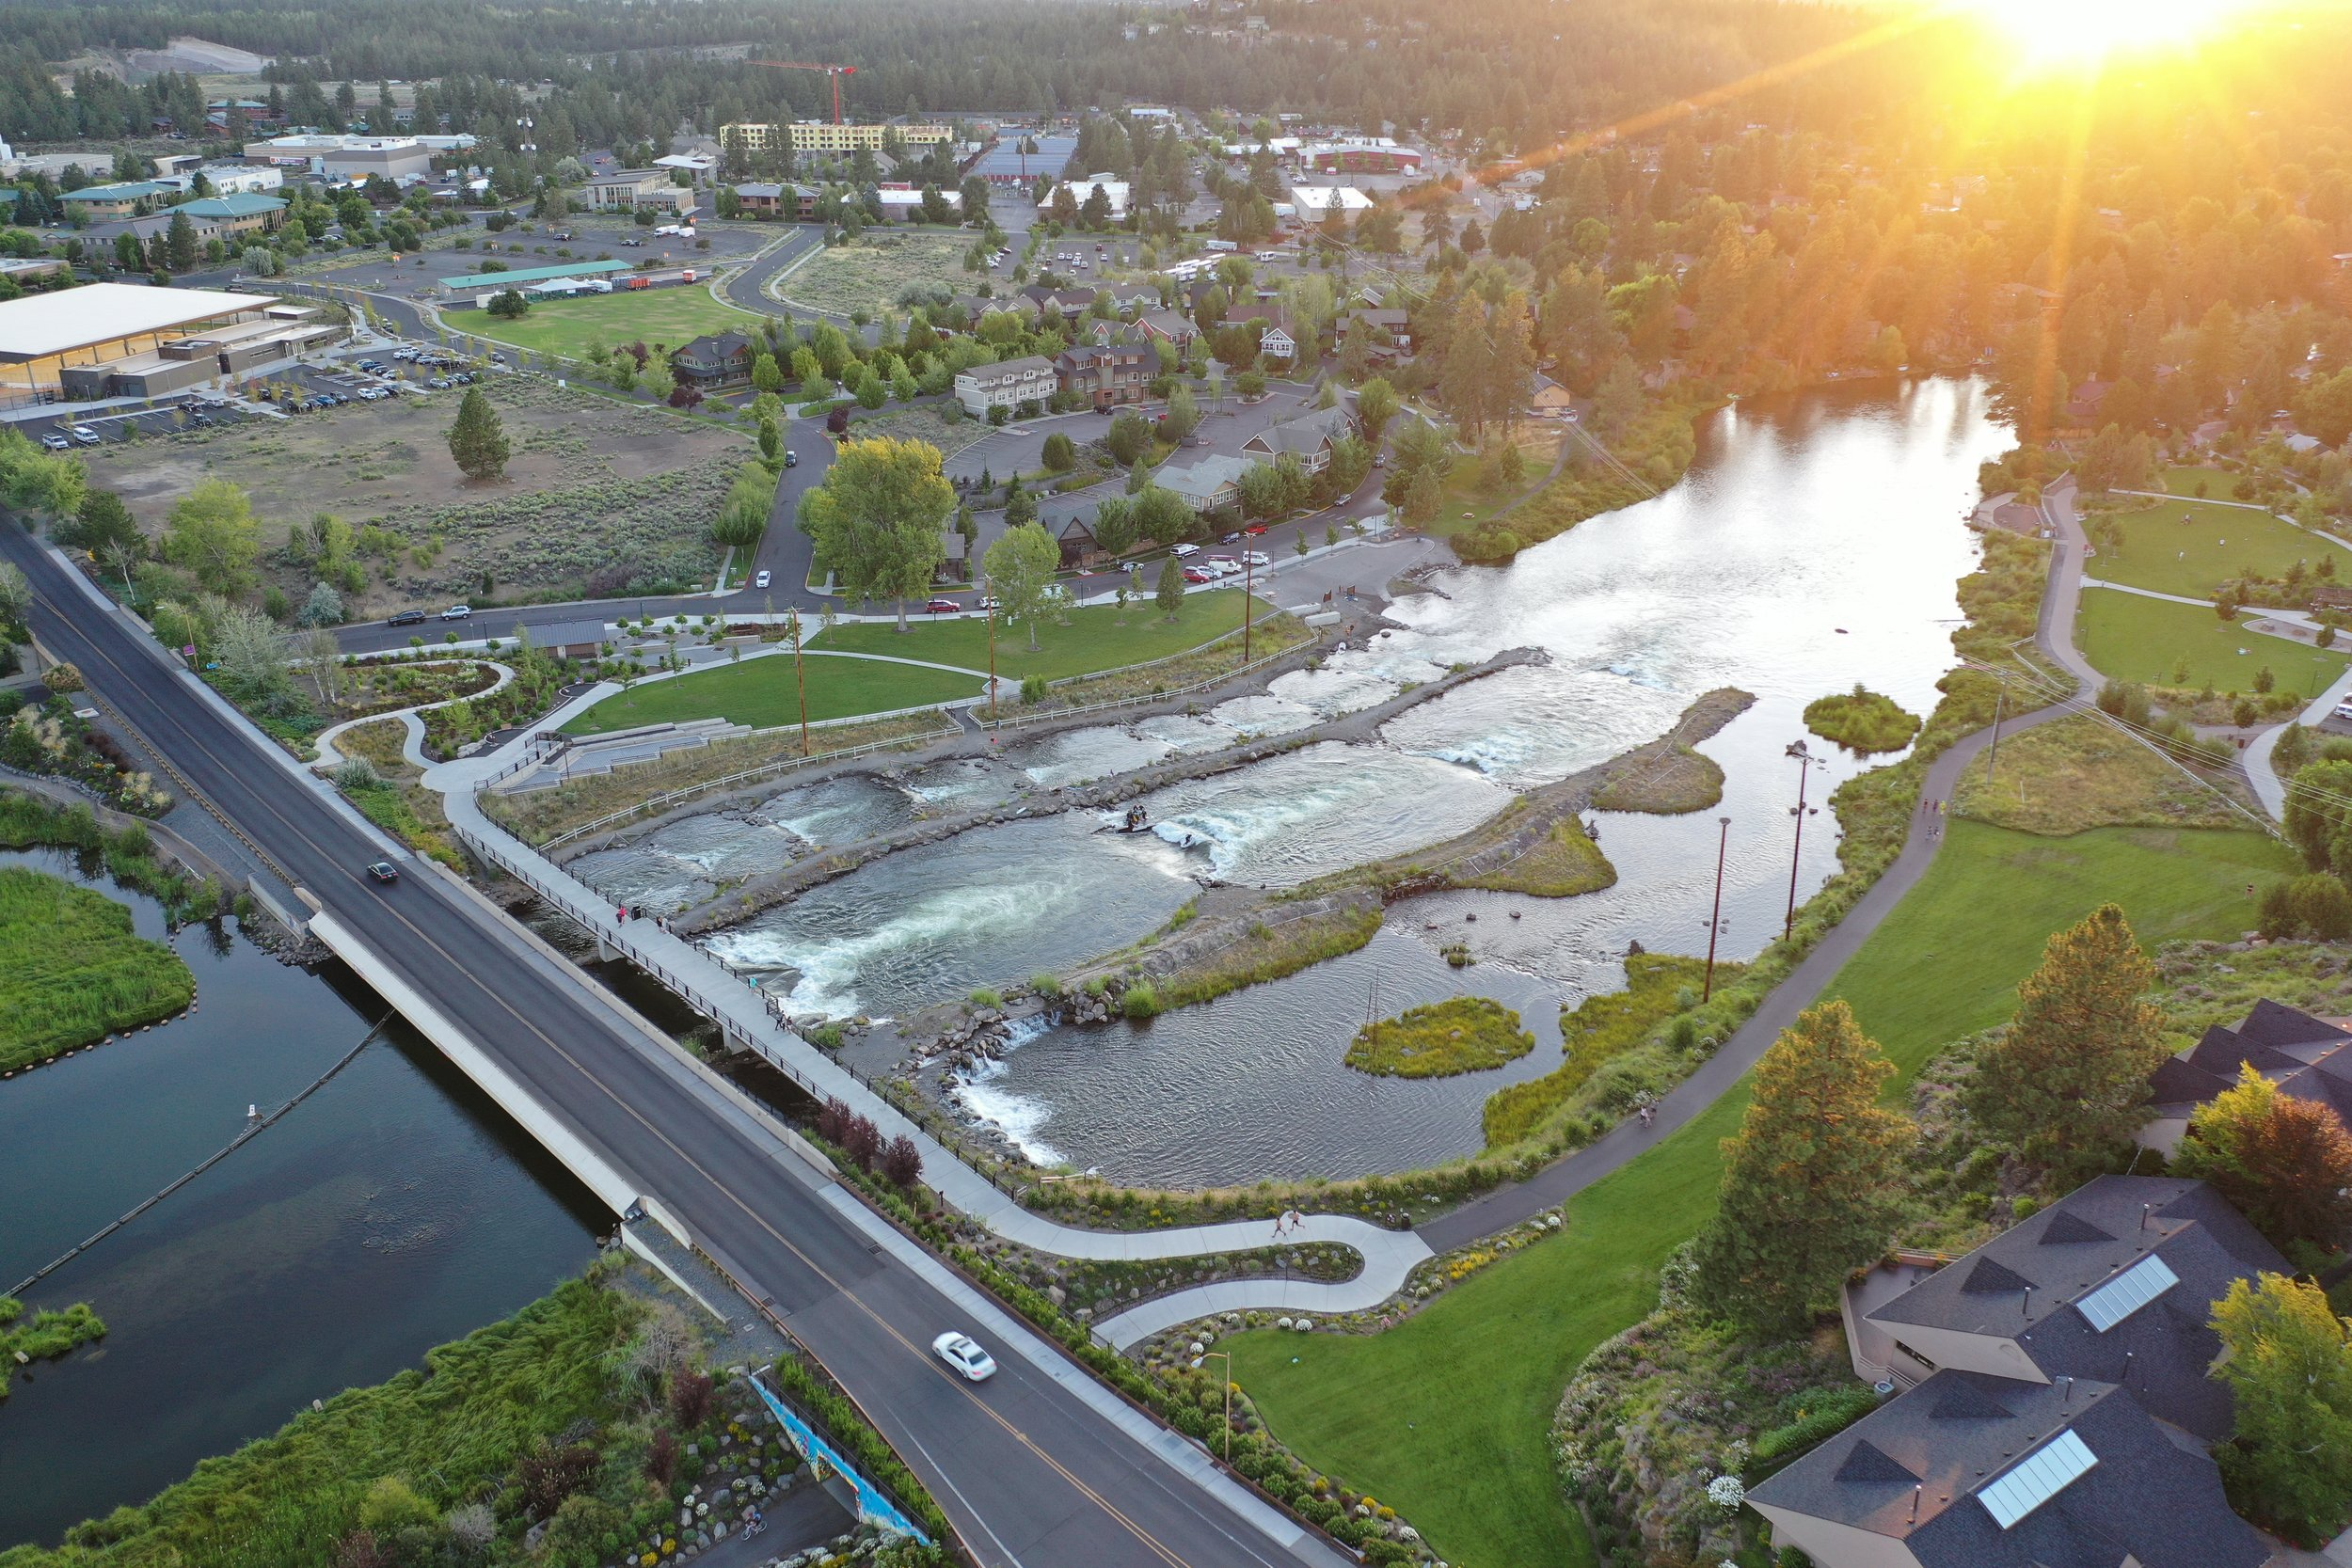 lens flare of sunset over whitewater park with river flowing